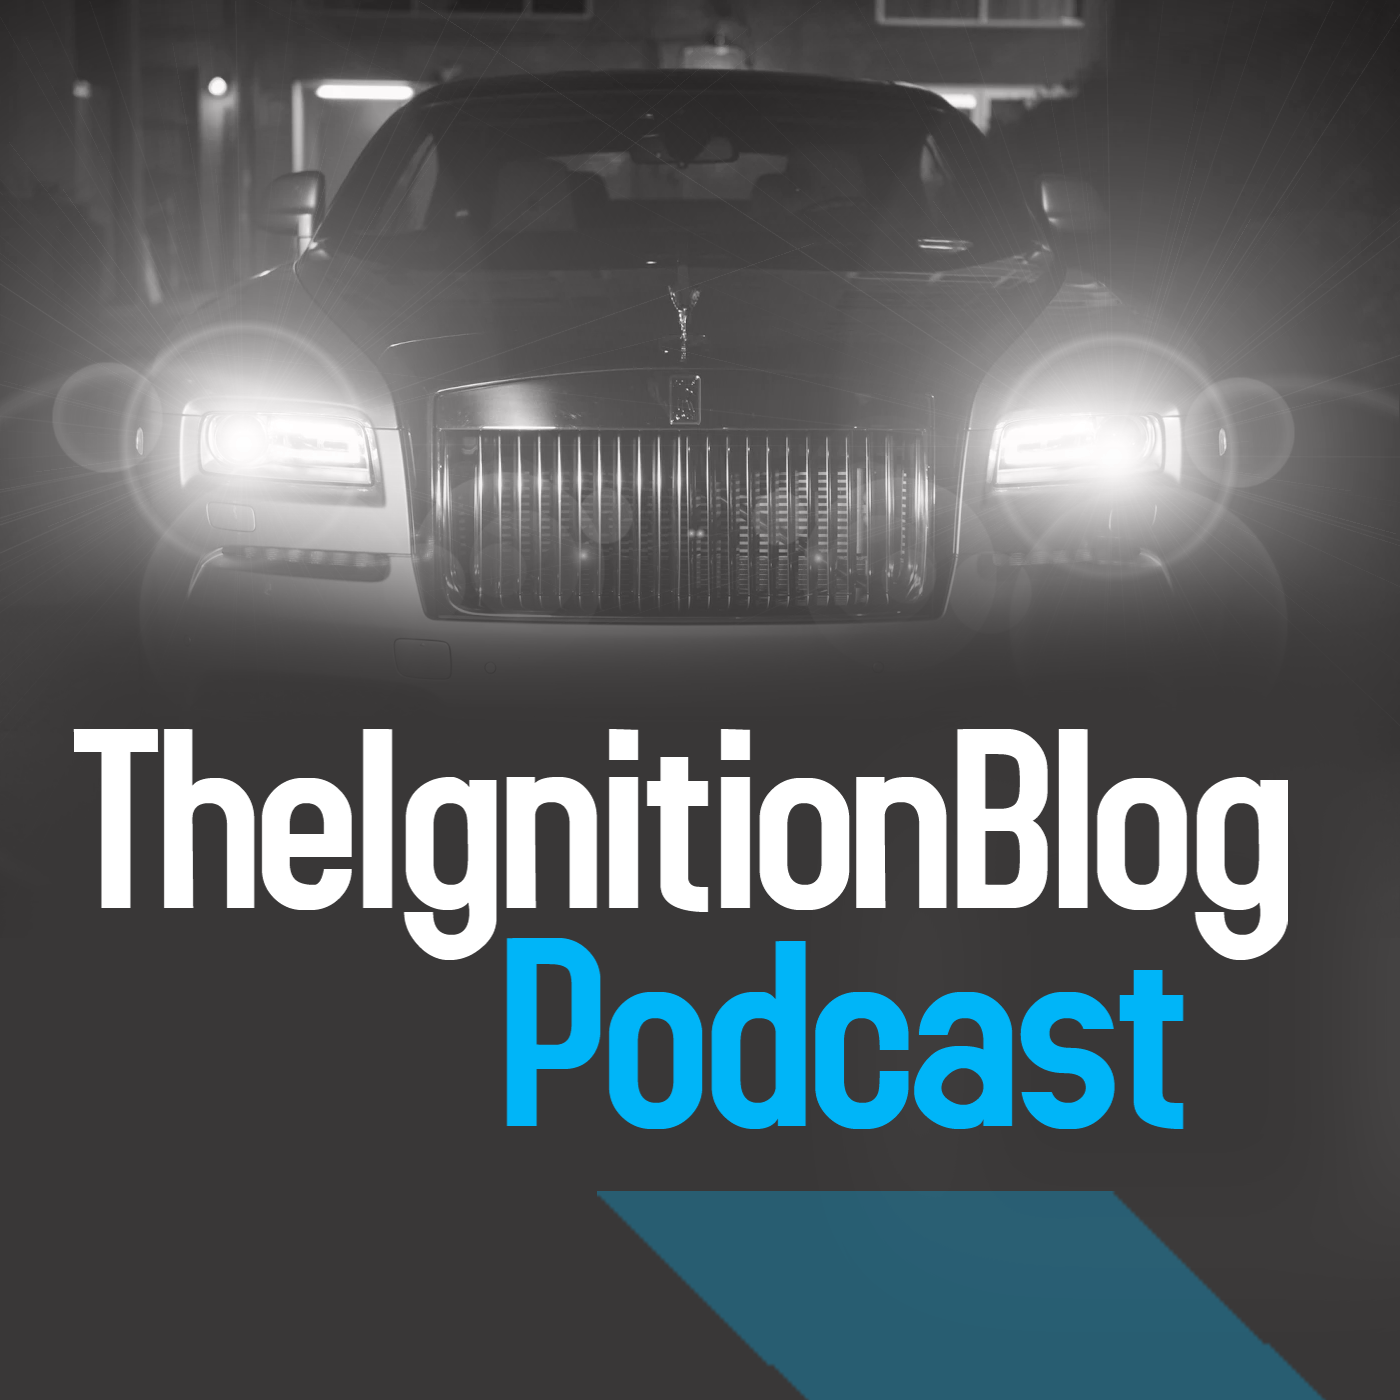 TheIgnitionBlog Podcast | Listen via Stitcher for Podcasts